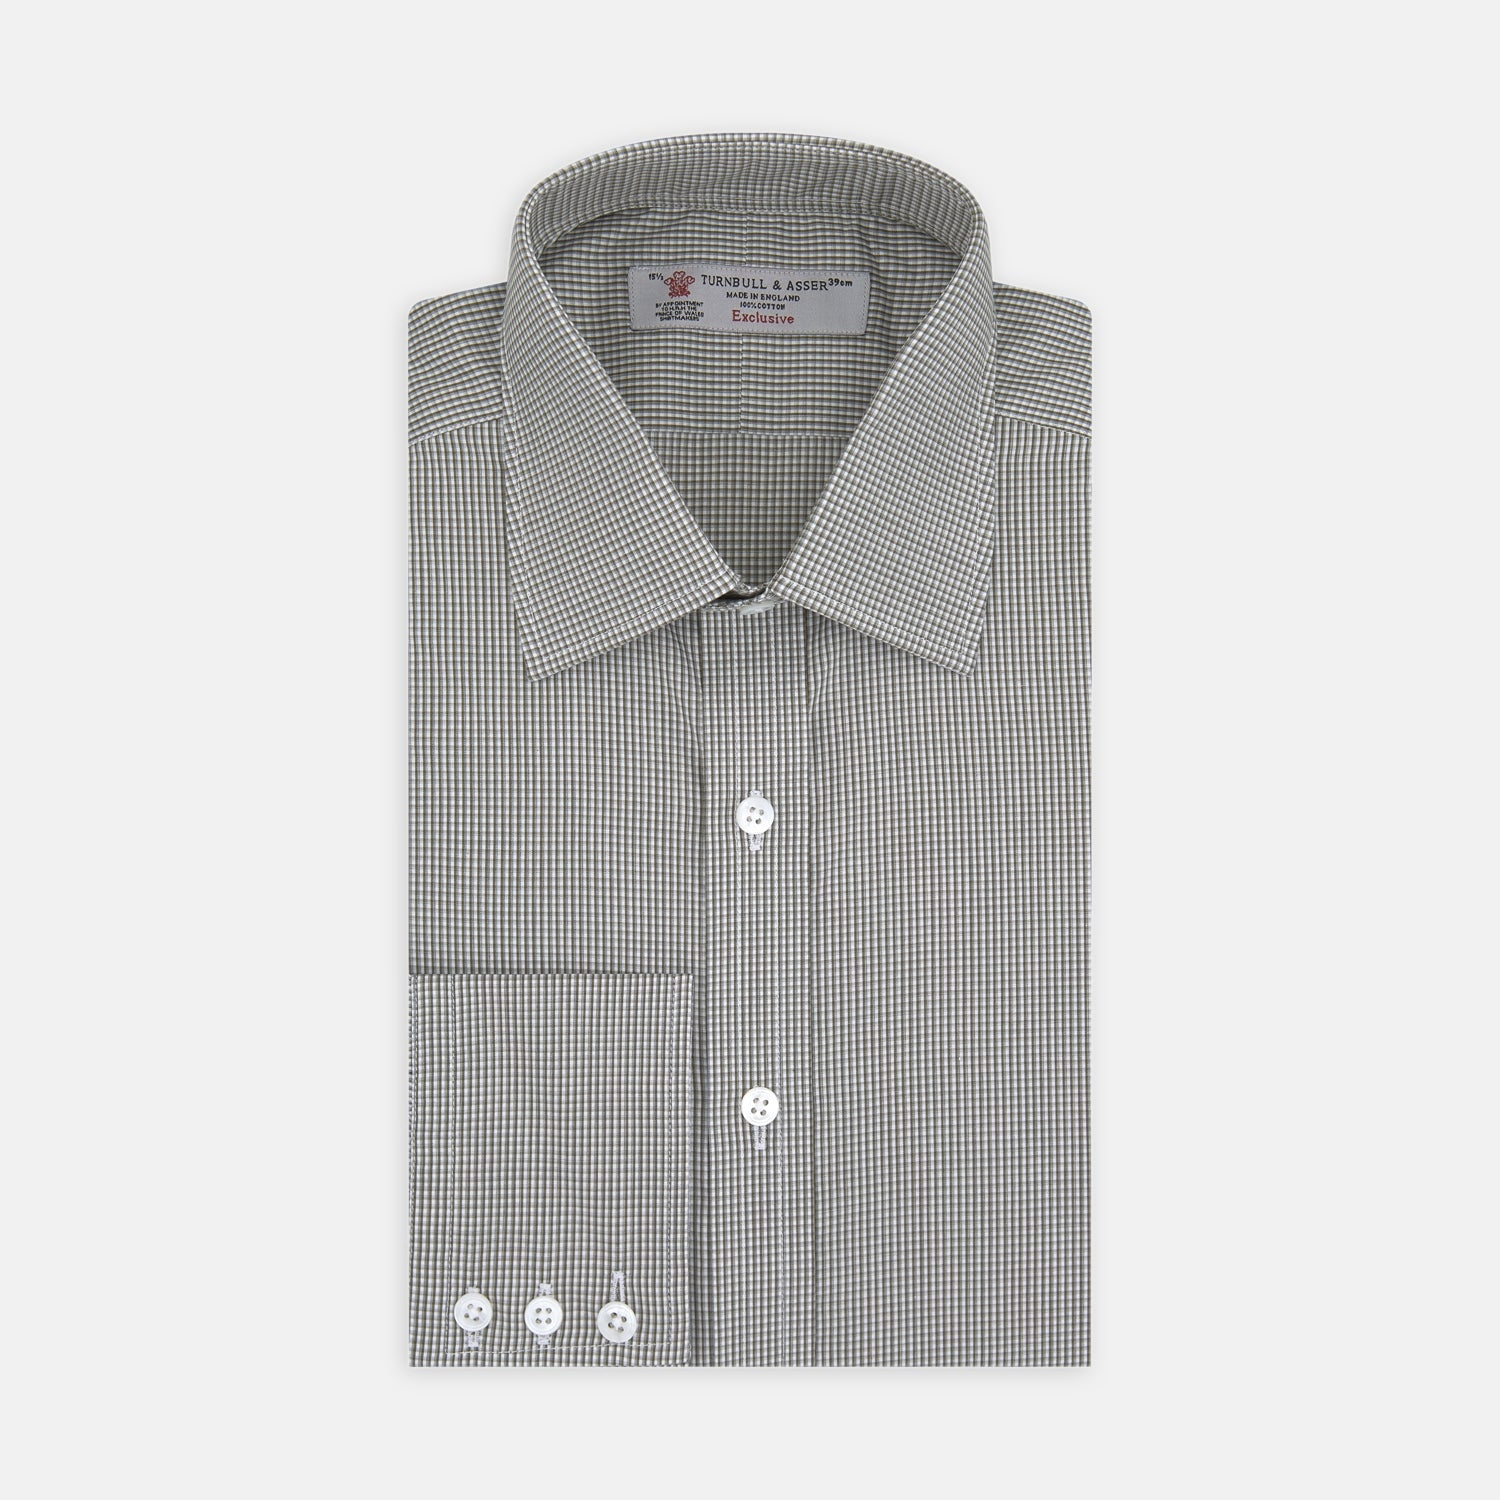 Brown and White Highlight Check Shirt with T&A Collar and 3-Button Cuffs